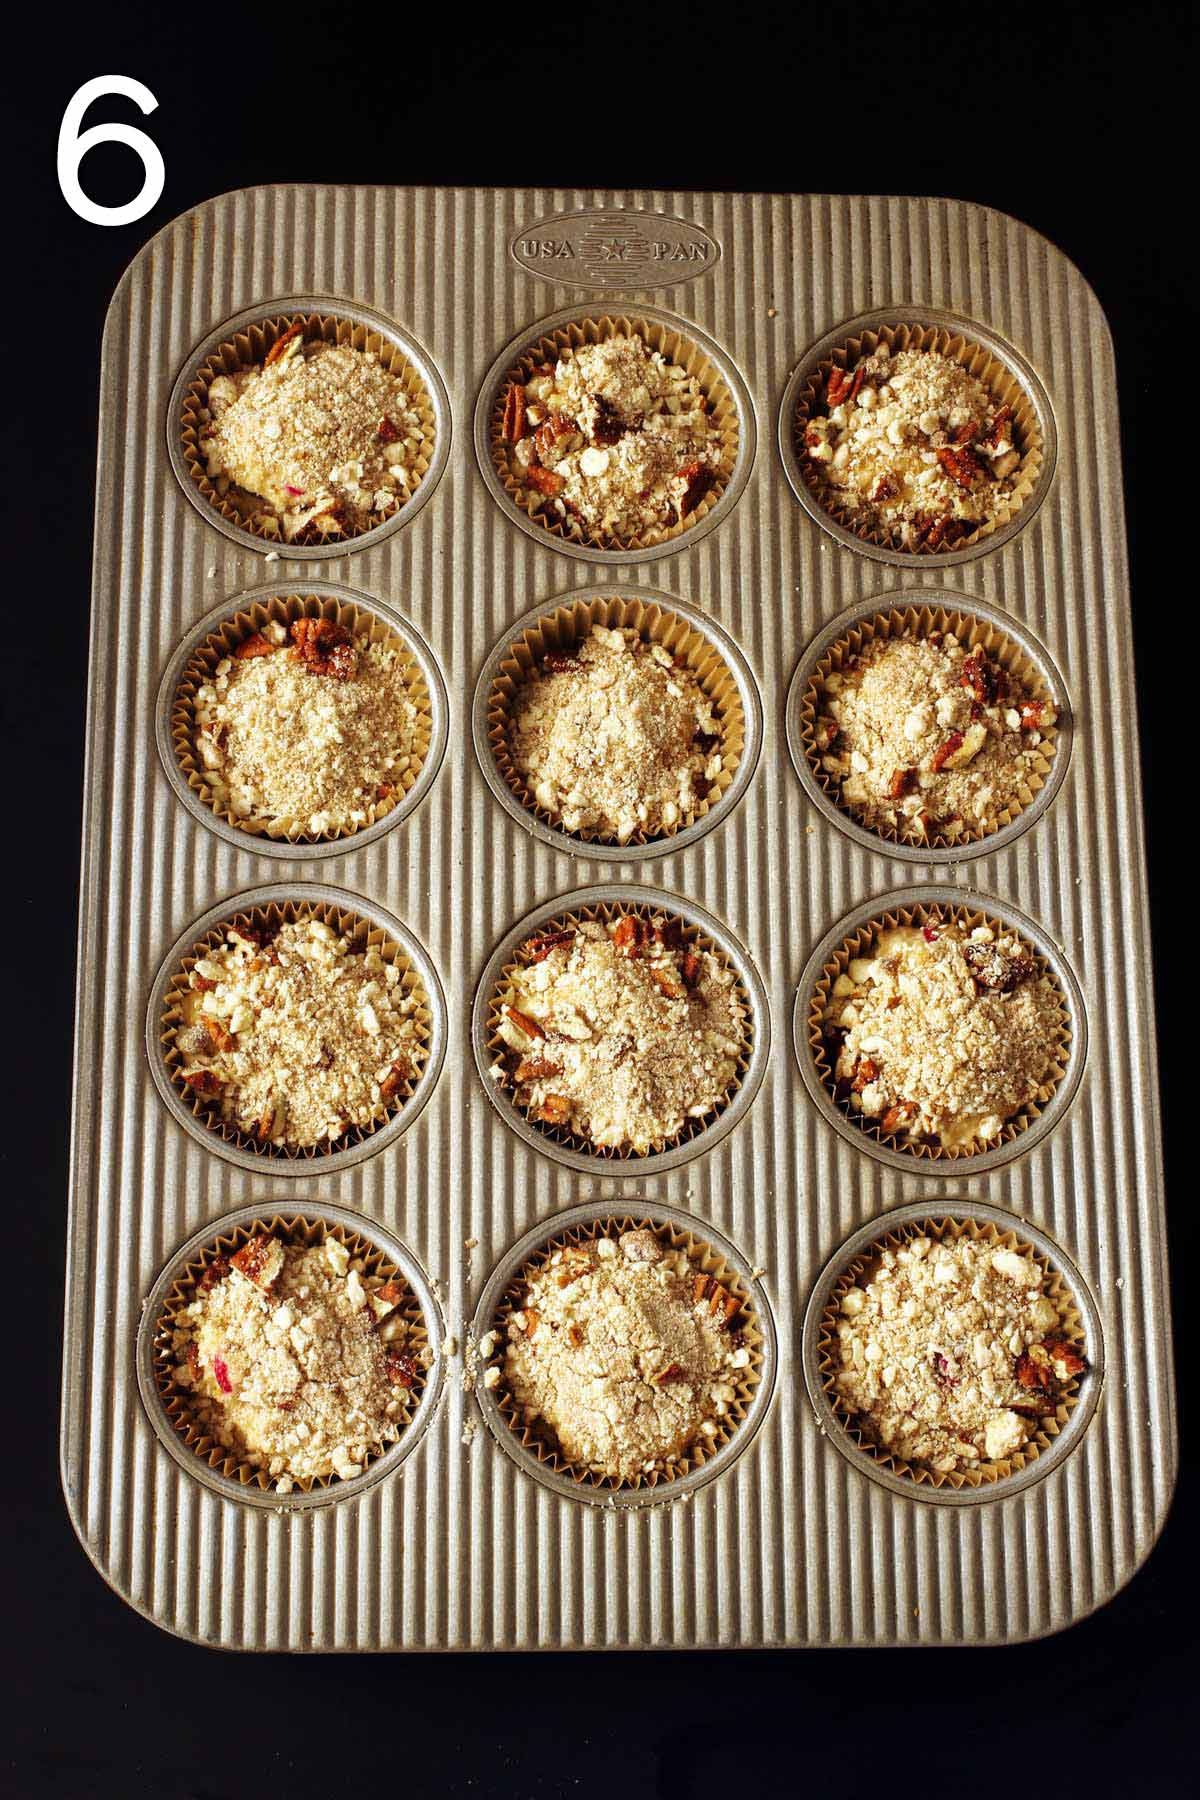 unbaked muffins with streusel on them ready to bake.